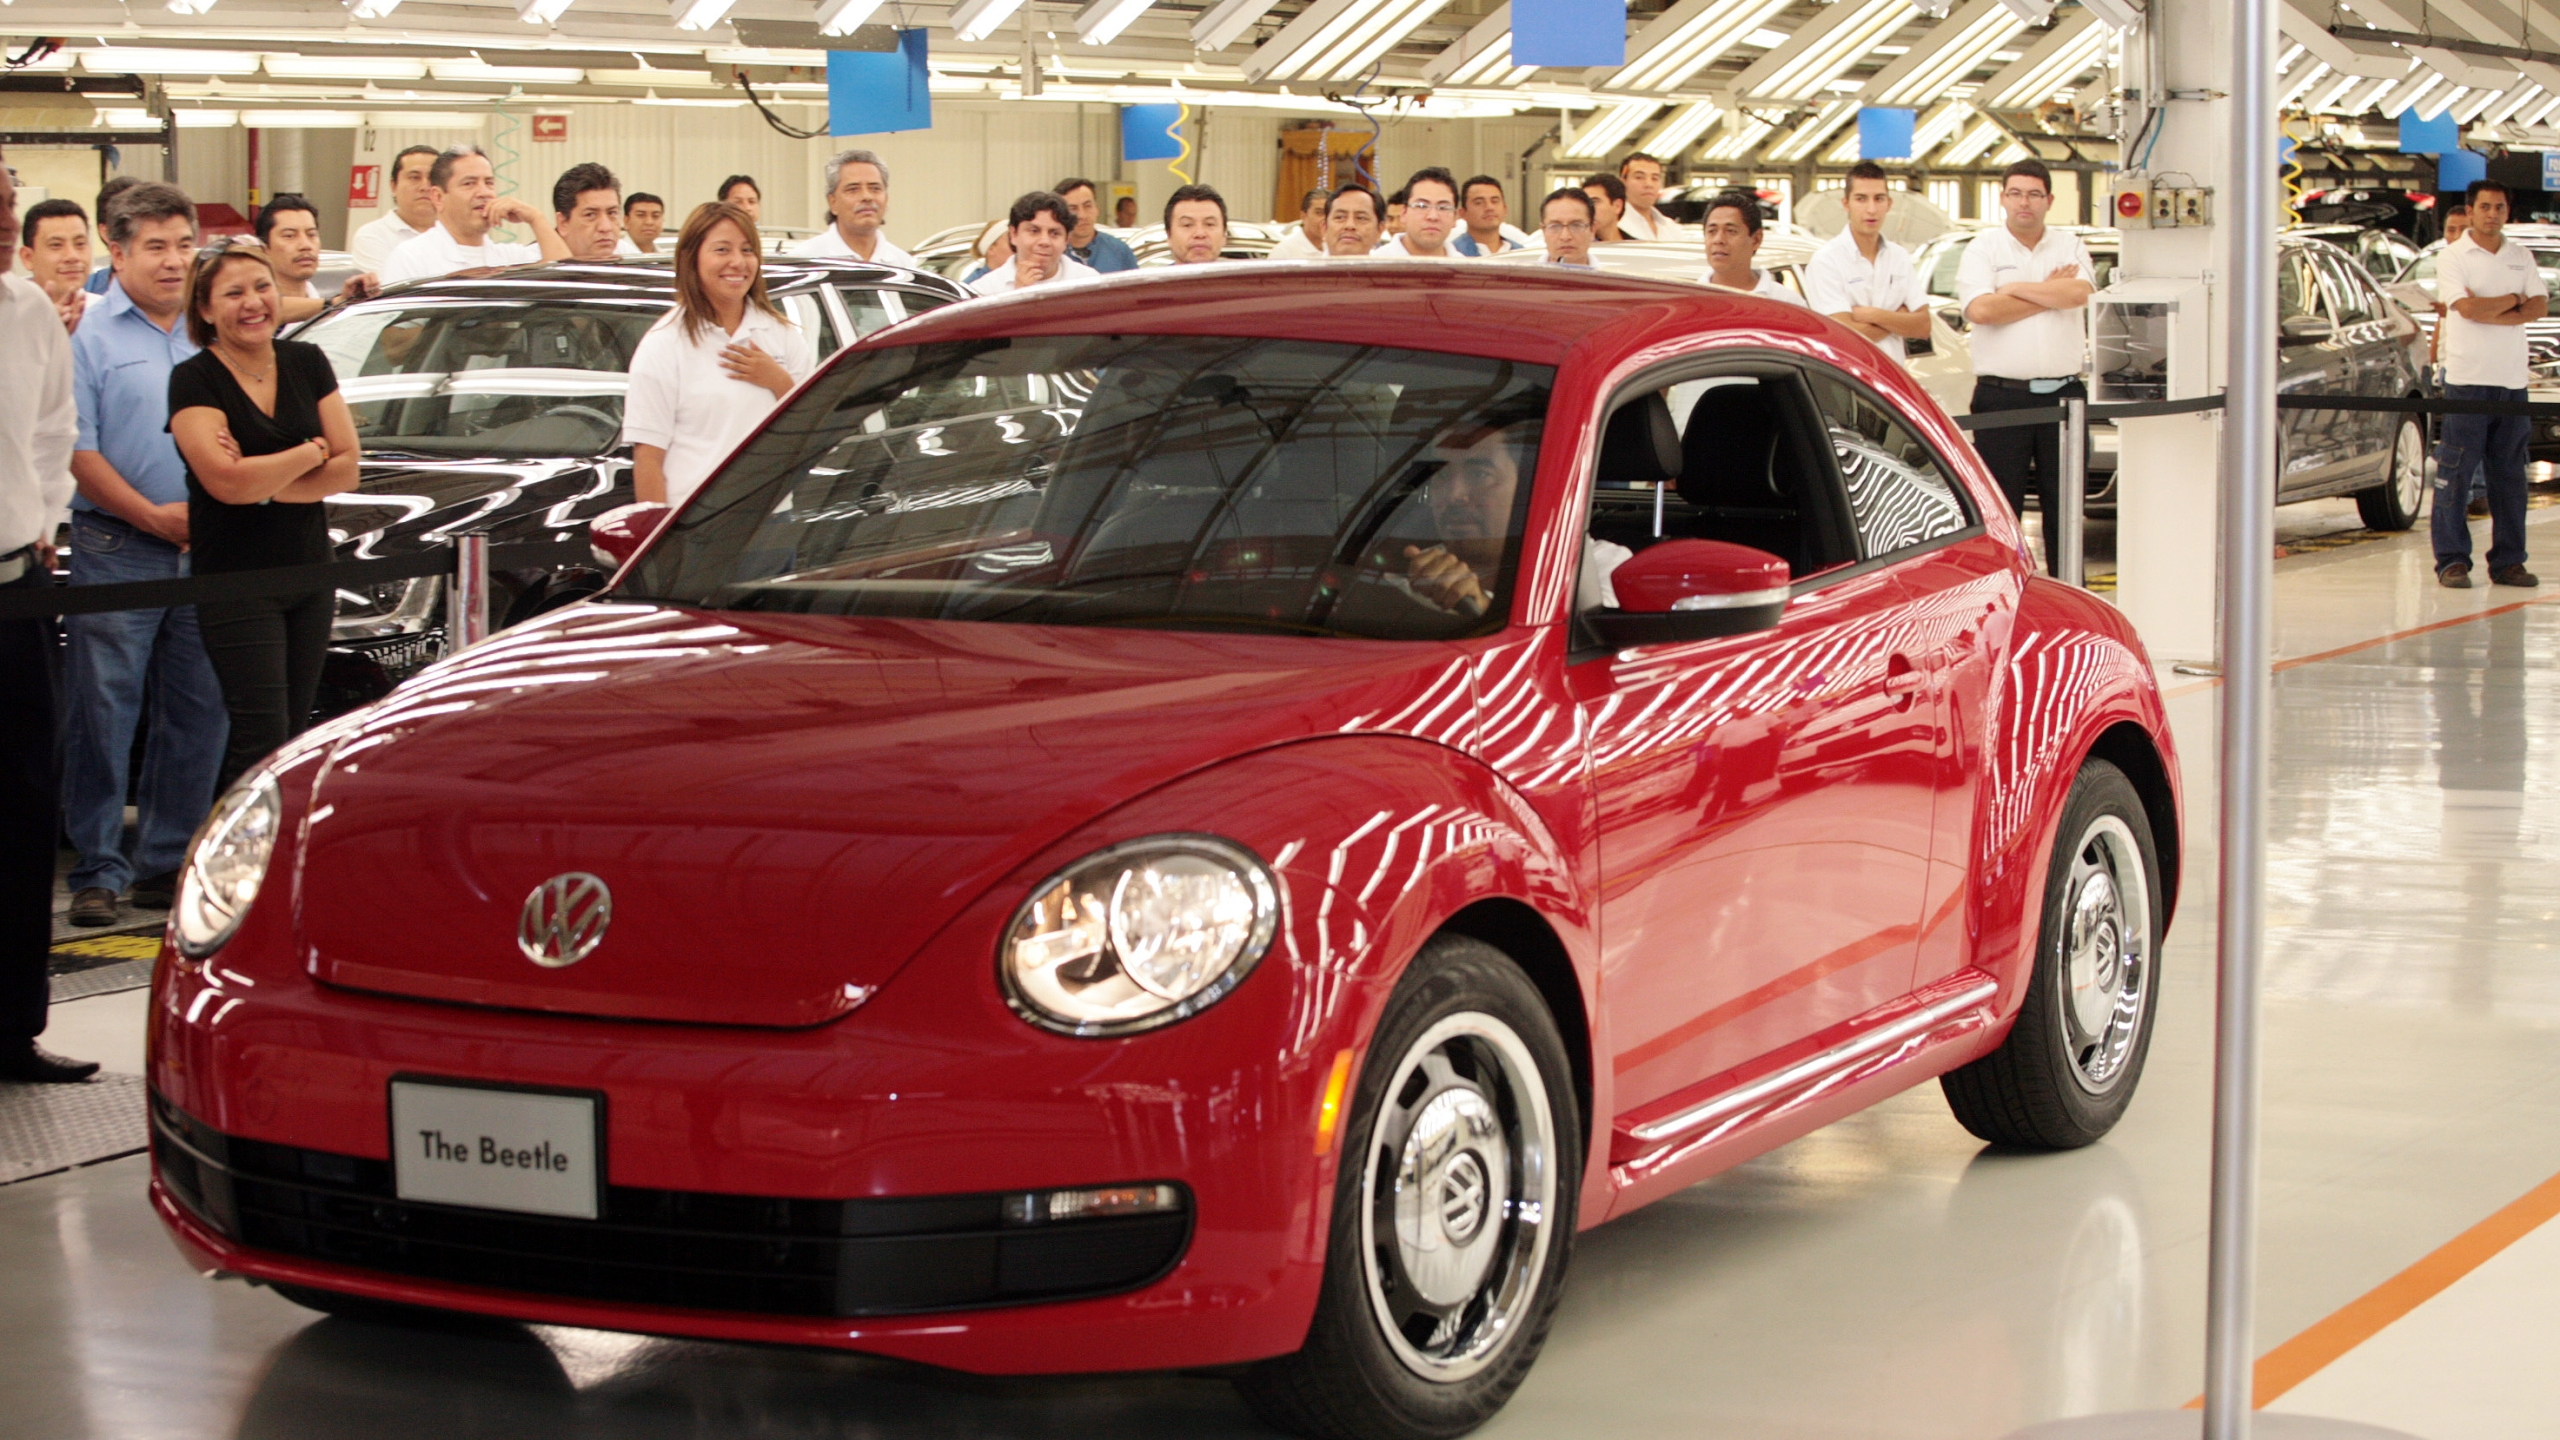 The latest incarnation of Volkswagen's iconic car, the Beetle, is presented to the media at the auto factory in Puebla State, Mexico on July 15, 2011. (Credit: Jose Castañares/AFP/Getty Images)